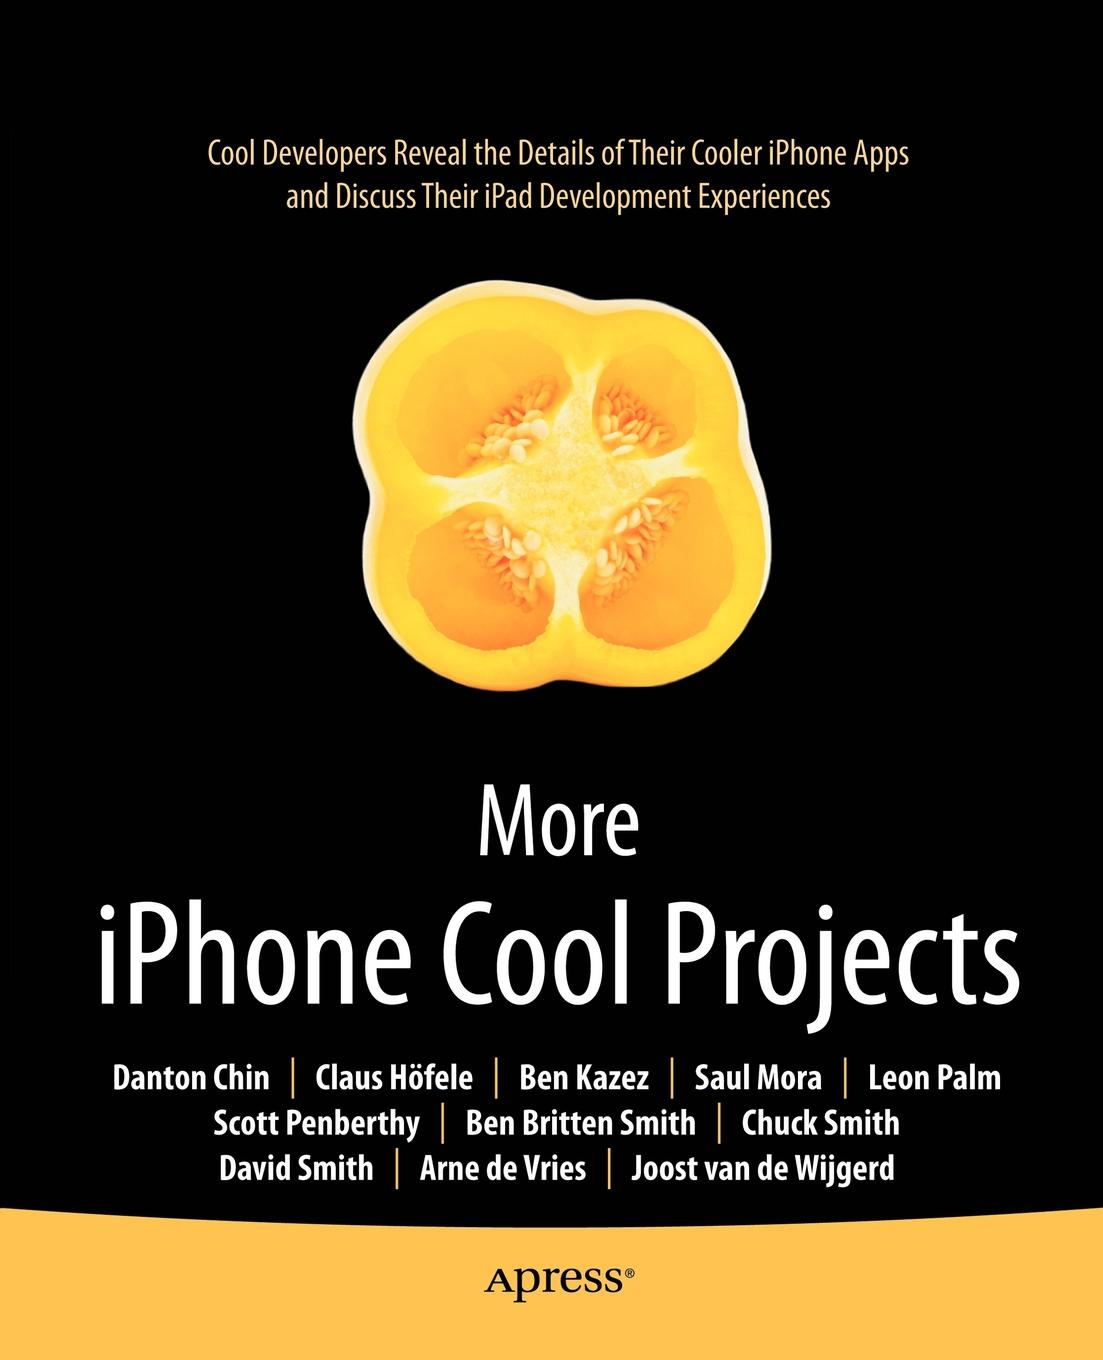 Danton Chin, Claus Hofele, Ben Kazez More iPhone Cool Projects. Developers Reveal the Details of Their Cooler Apps and Discuss iPad Development Experiences